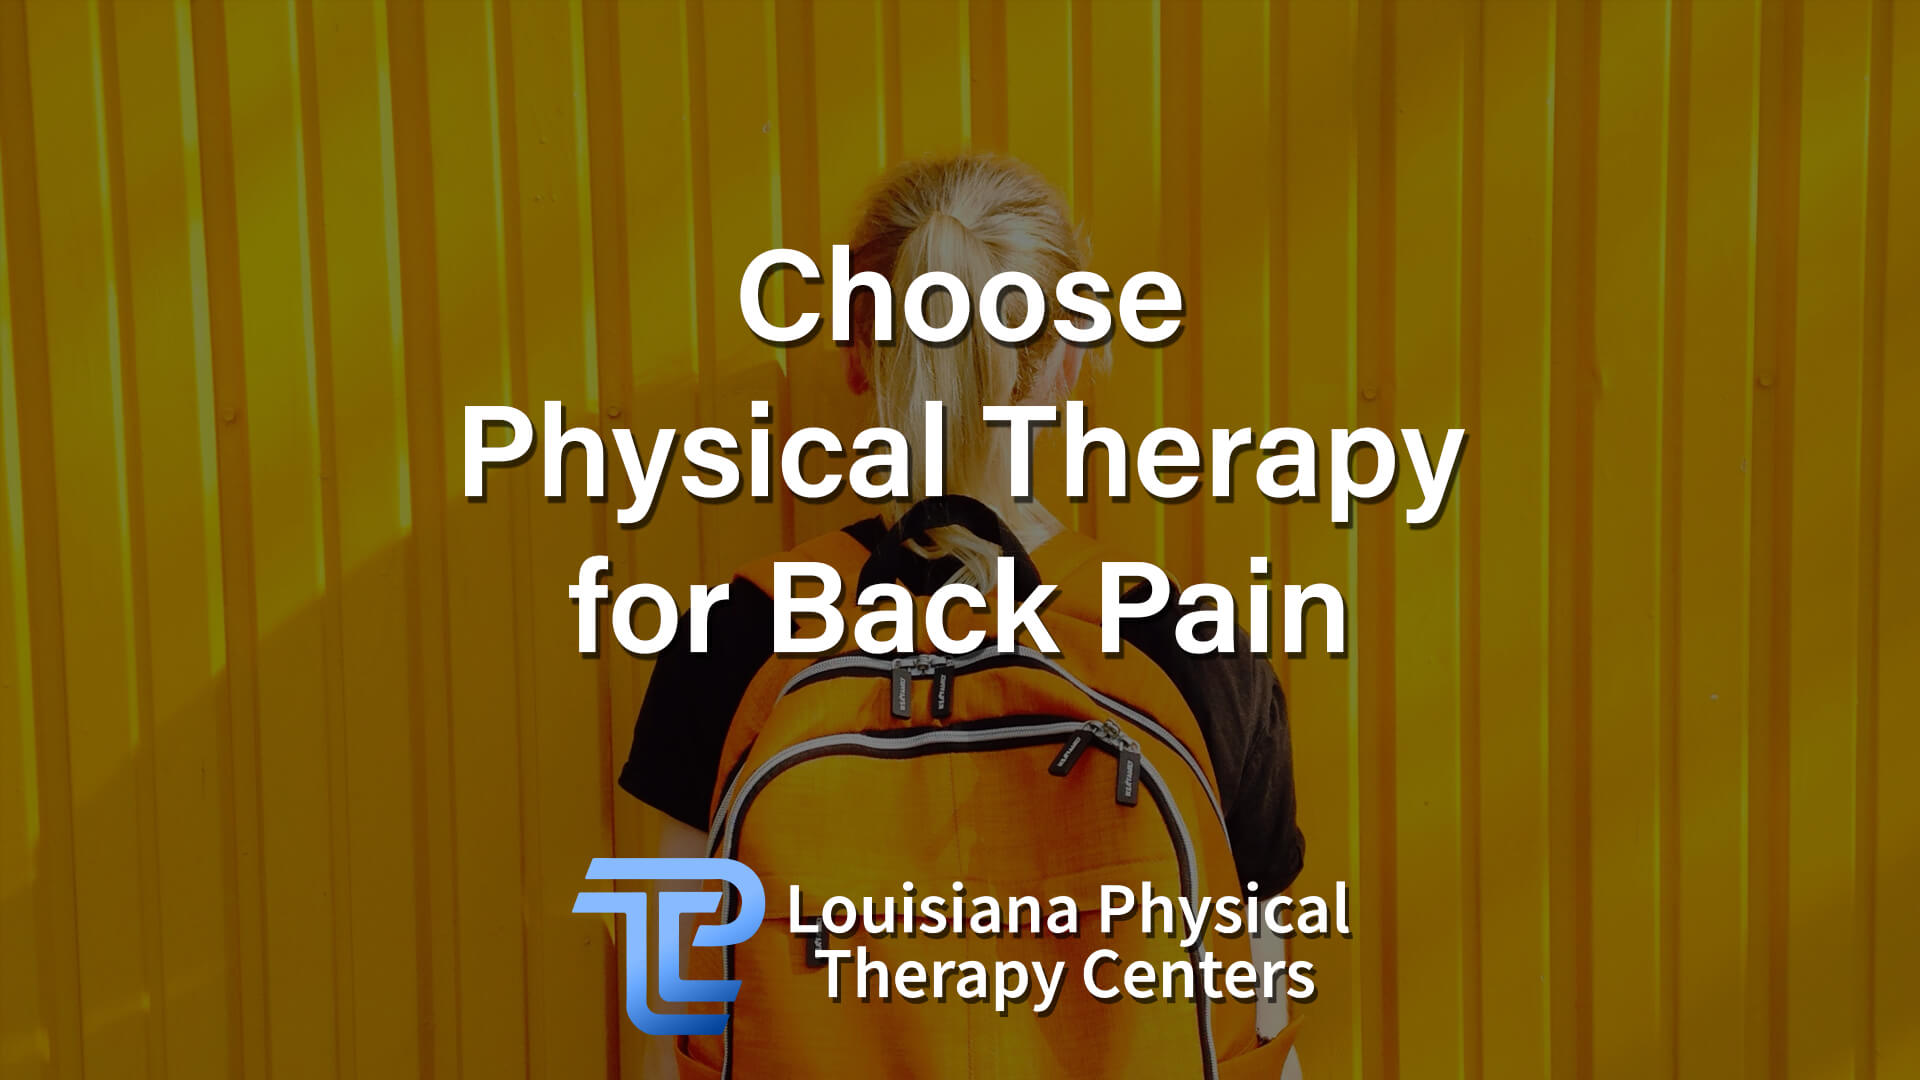 Choose Physical Therapy for Back Pain